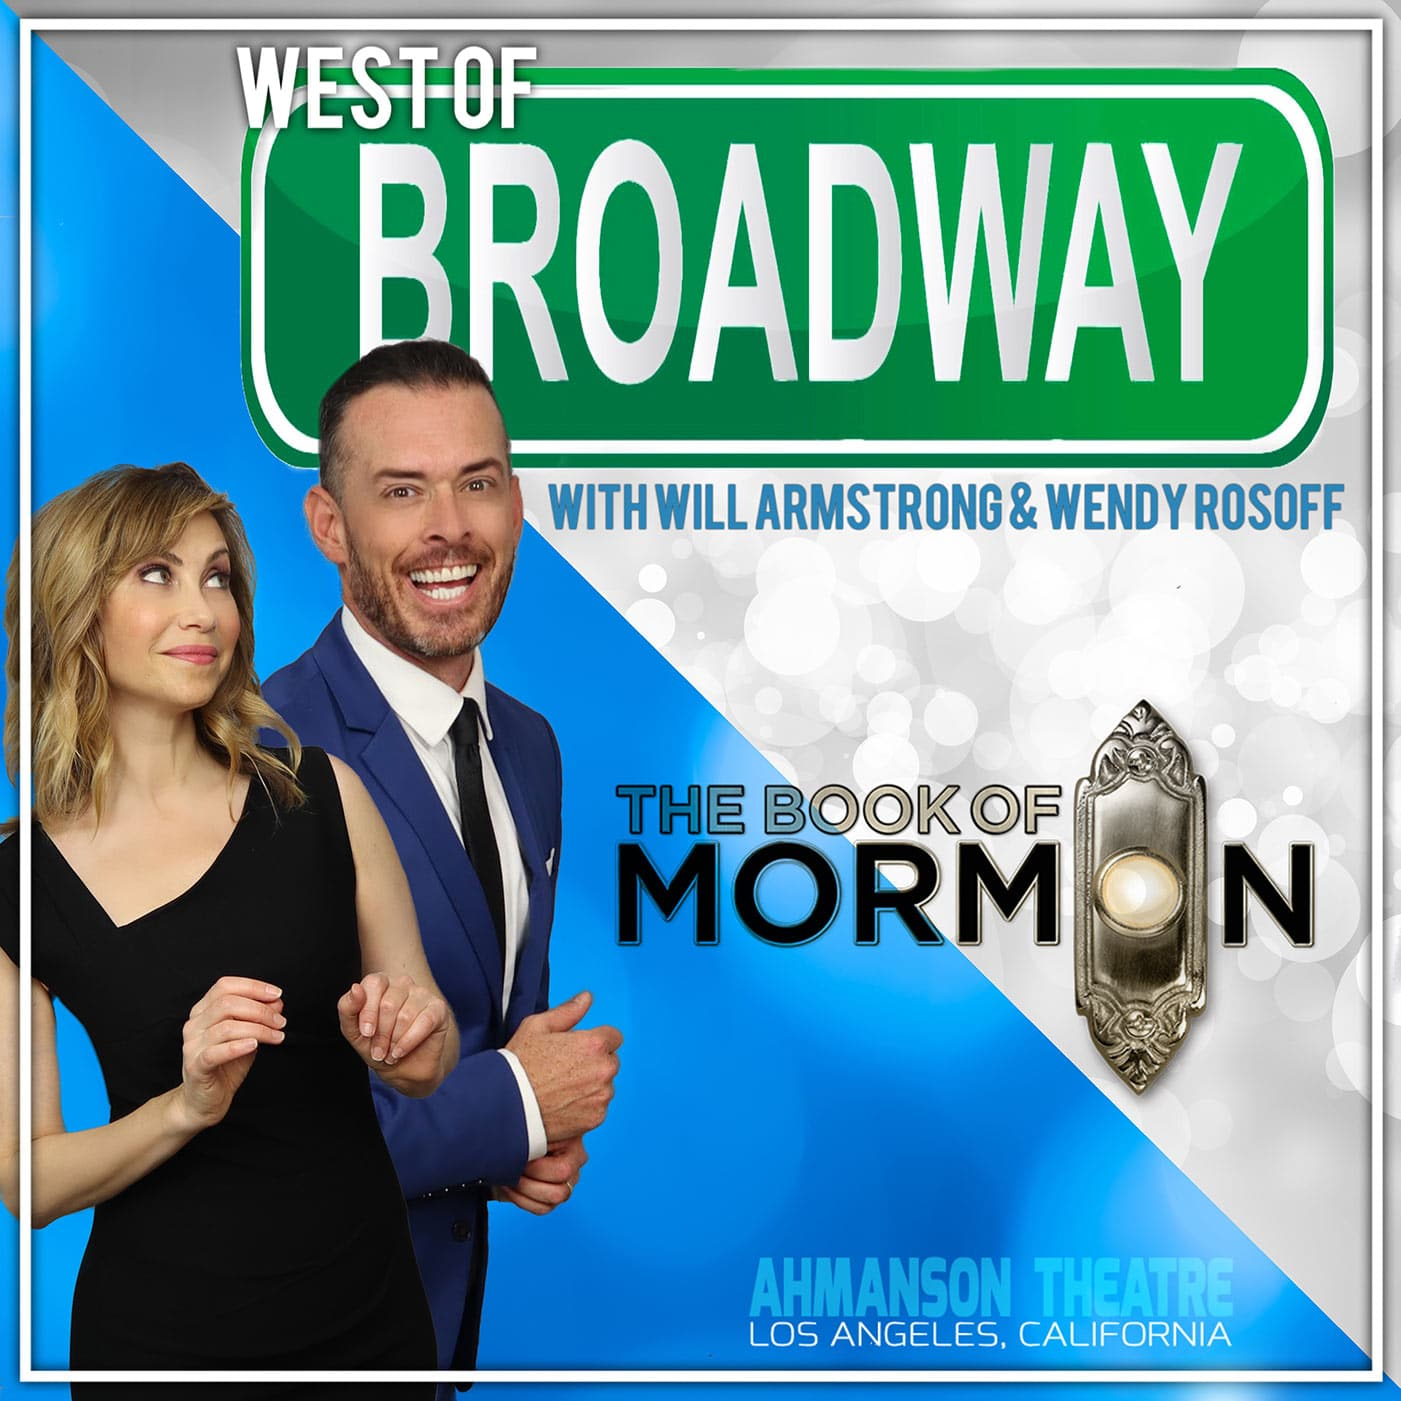 West of Broadway - Book of Mormon's Liam Tobin